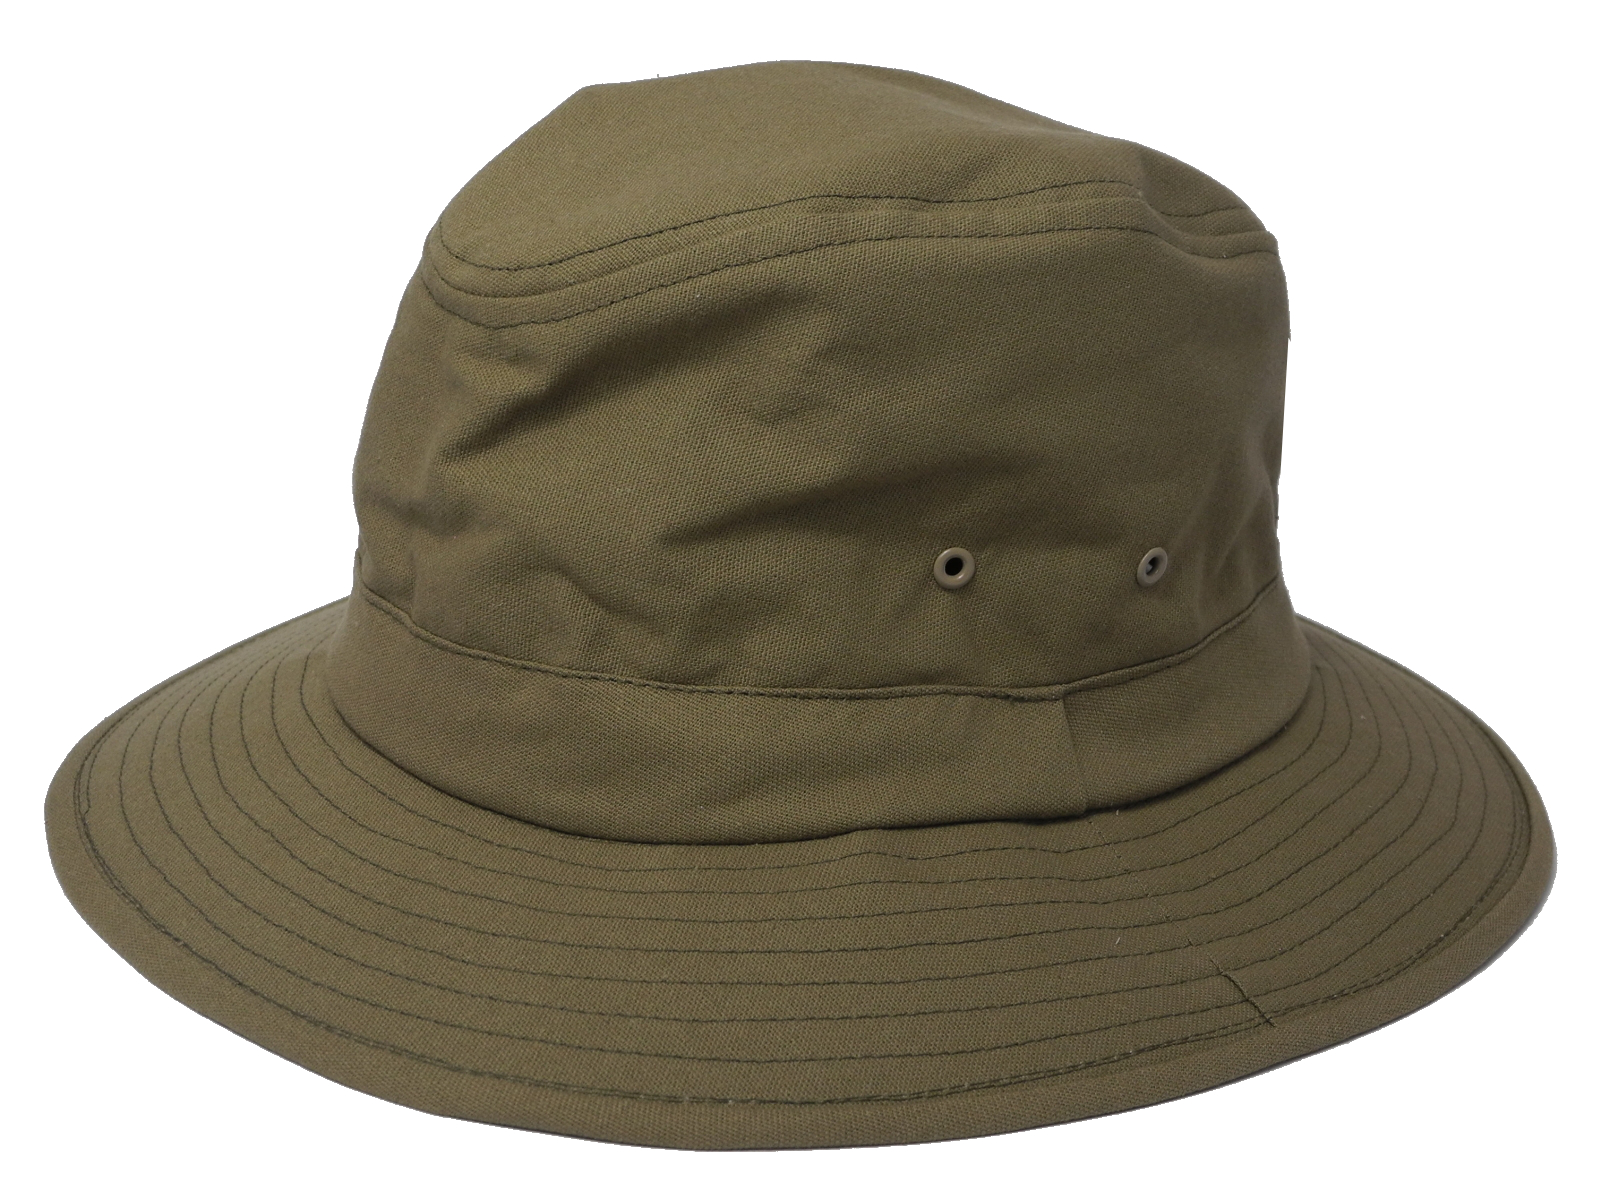 We also carry packable summer hats that compress for easy travel and storage. Hats in the Belfry's men's spring and summer hat sale includes hats by popular name brands, including Bailey, Belfry, Borsalino, Broner, Kangol and Stetson.